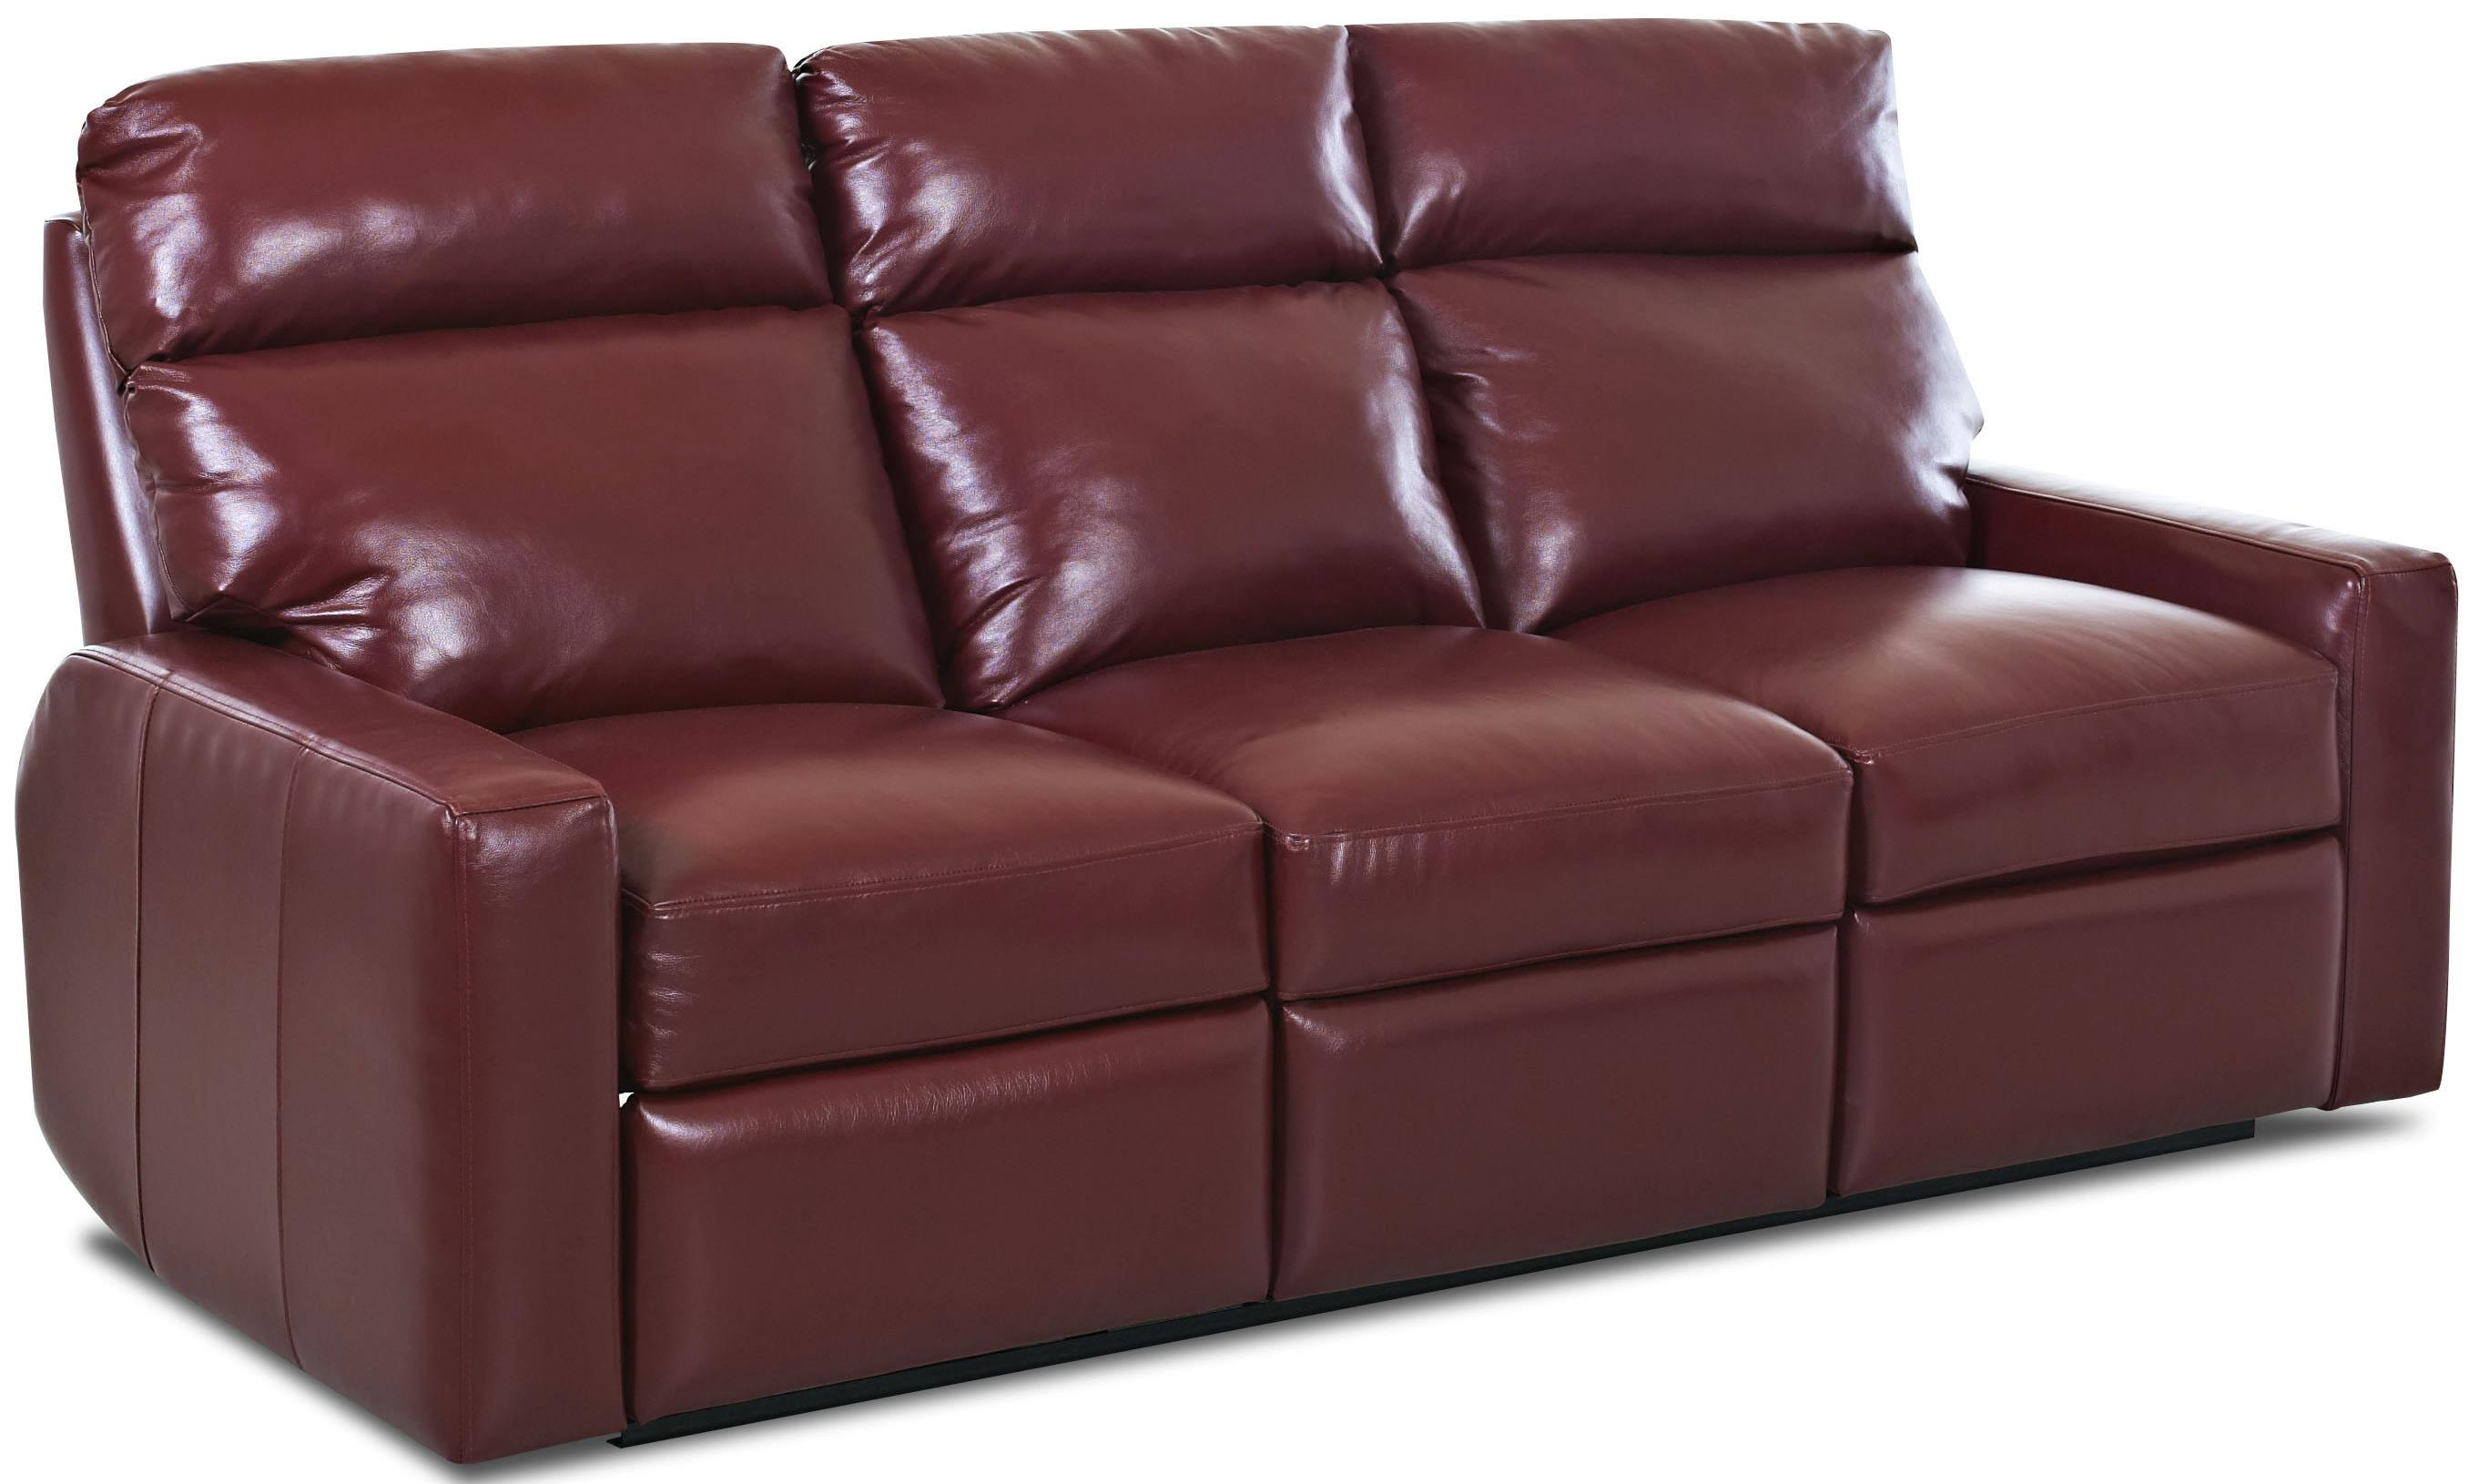 justin ii fabric reclining sectional sofa ashley recliner comfort design ausie clp435p with power